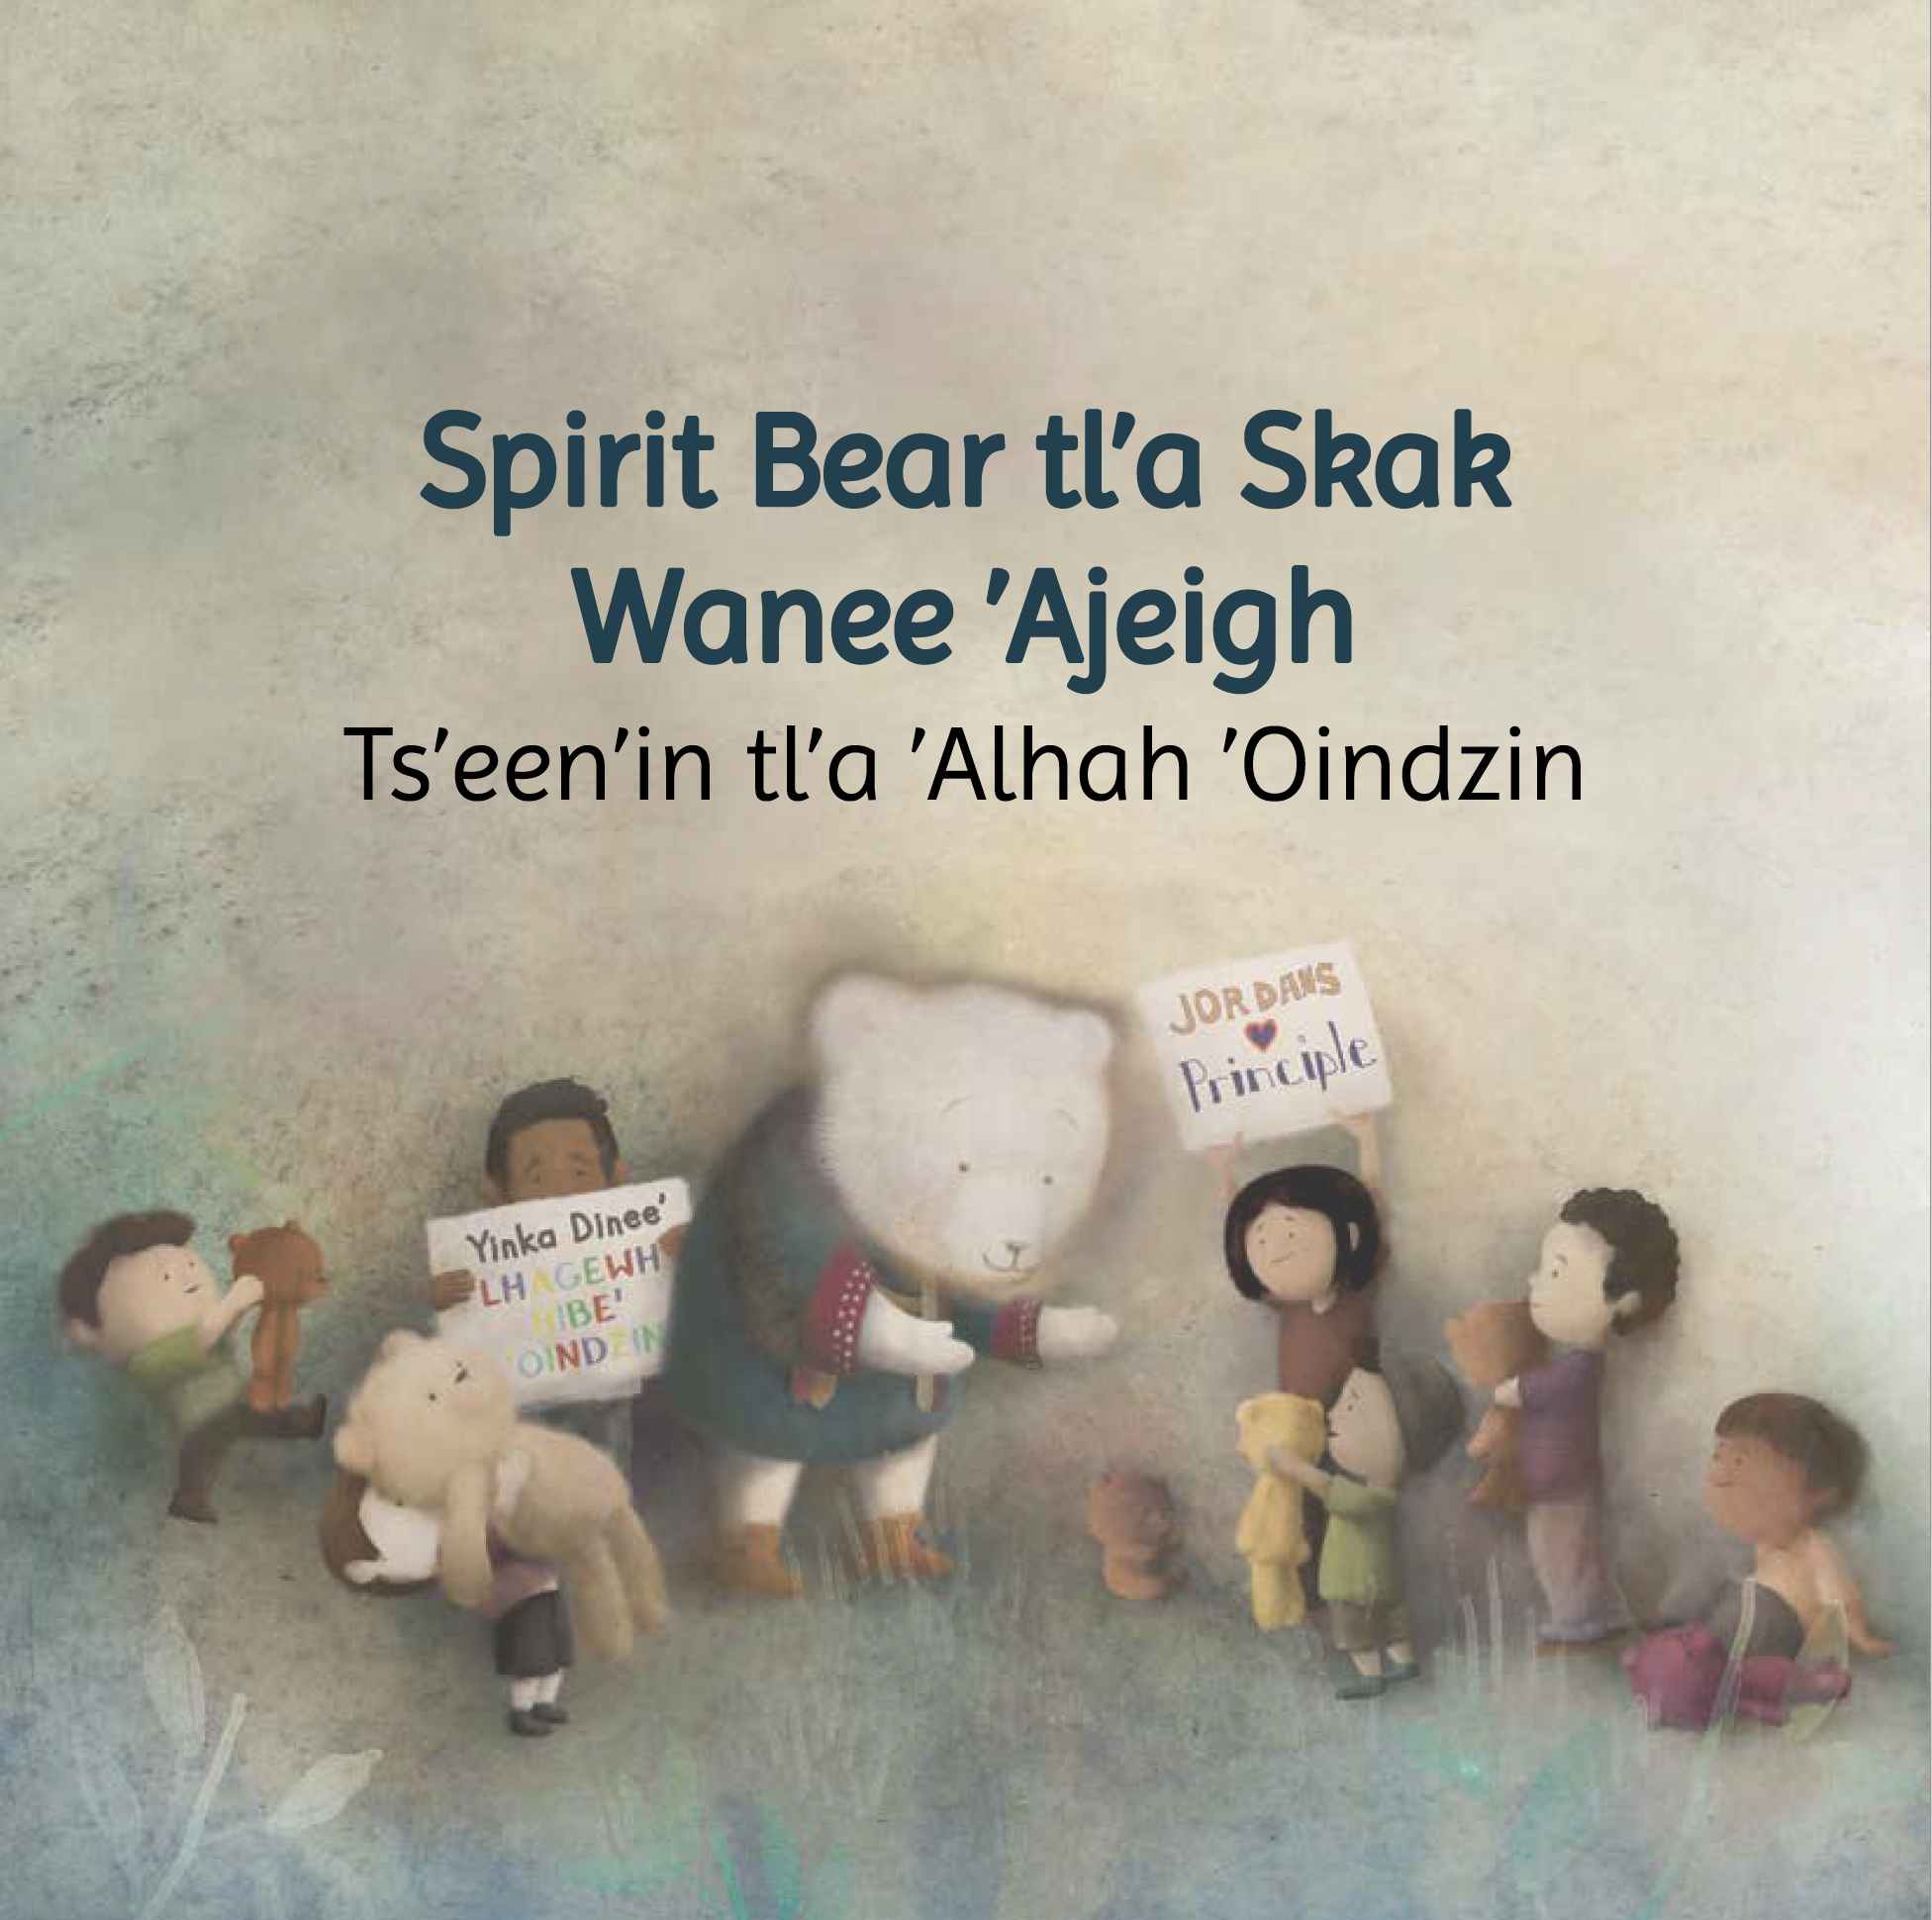 Carrier translation - Spirit Bear and Children Make History